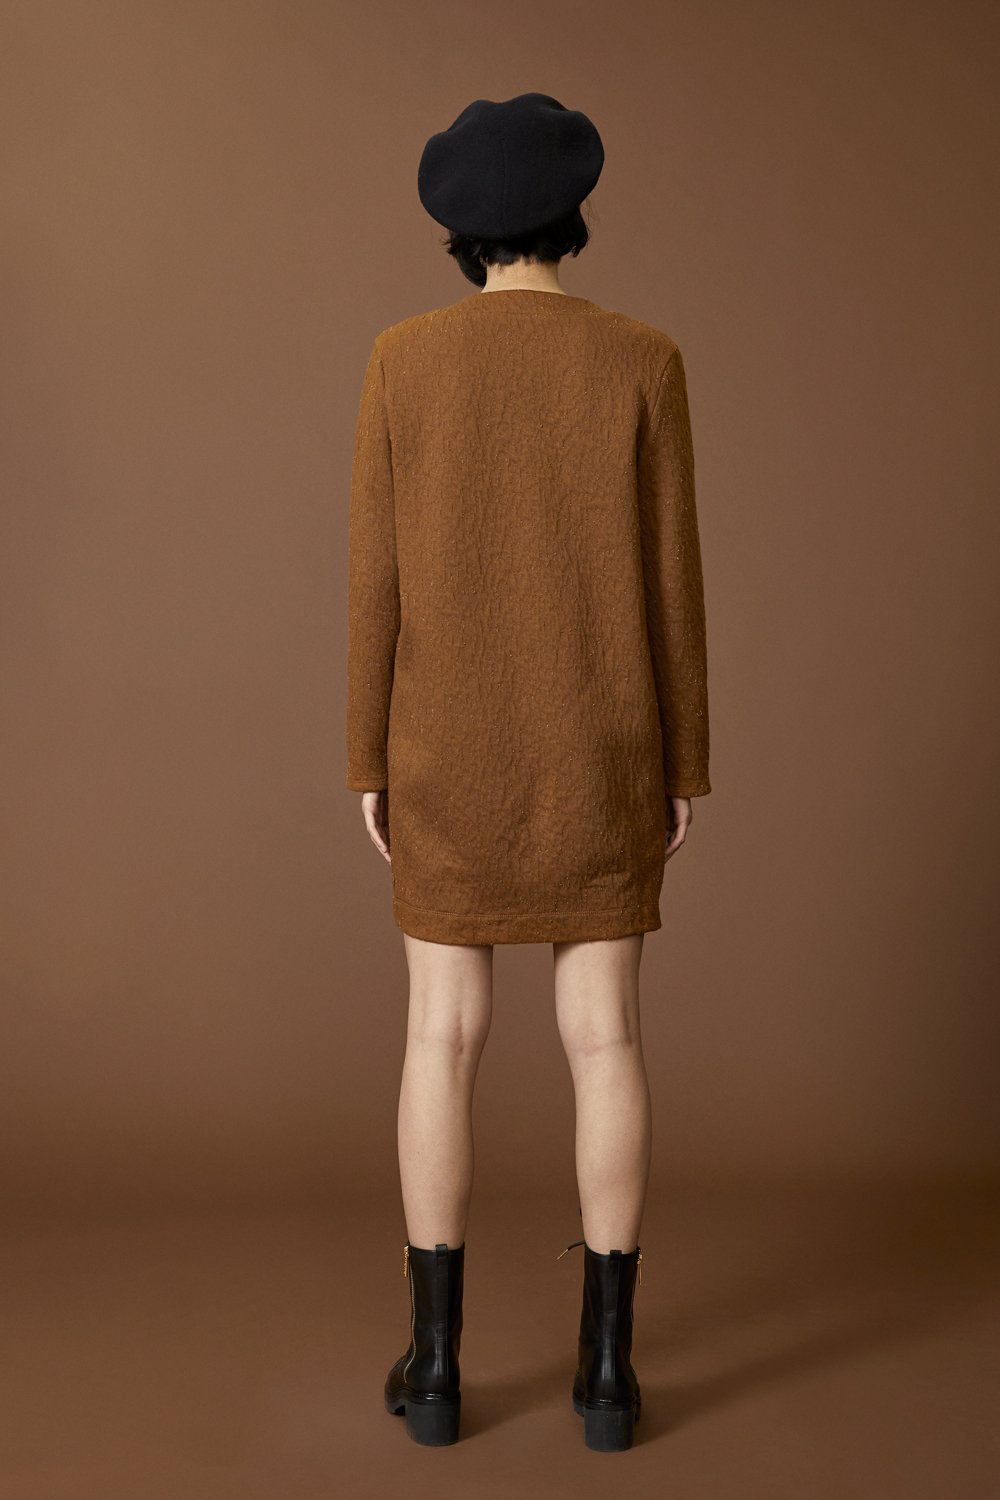 Faye tunic by Cokluch; round neck; long-sleeved; hits above the knee; cinnamon crinkle material; full length rear view, styled with black combat boots